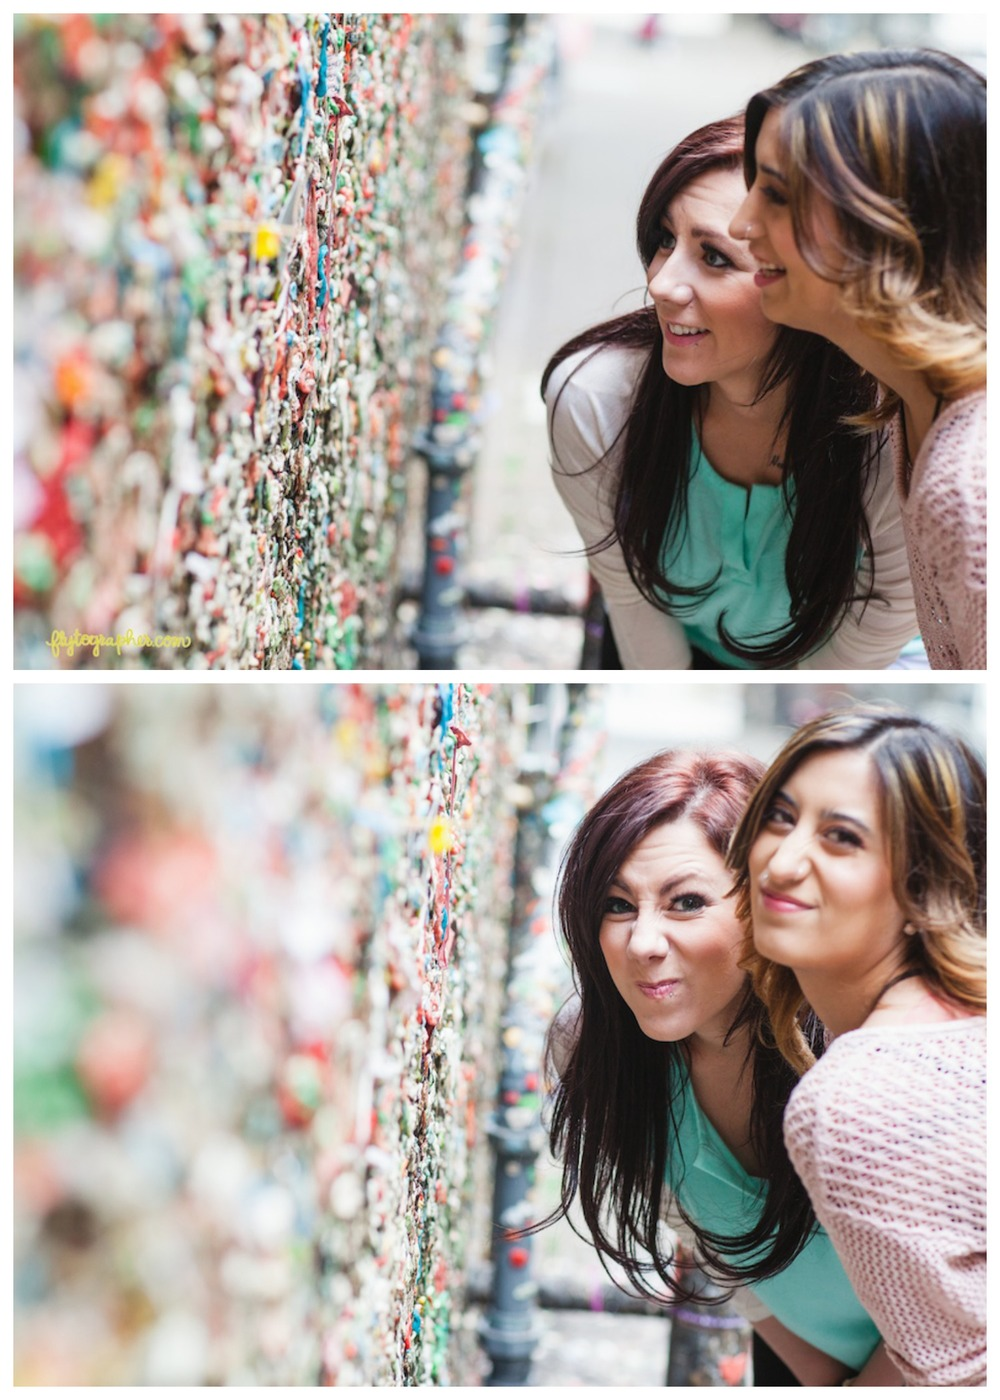 The Gum Wall in Pike Place Market. Verdict? Not so appetizing...